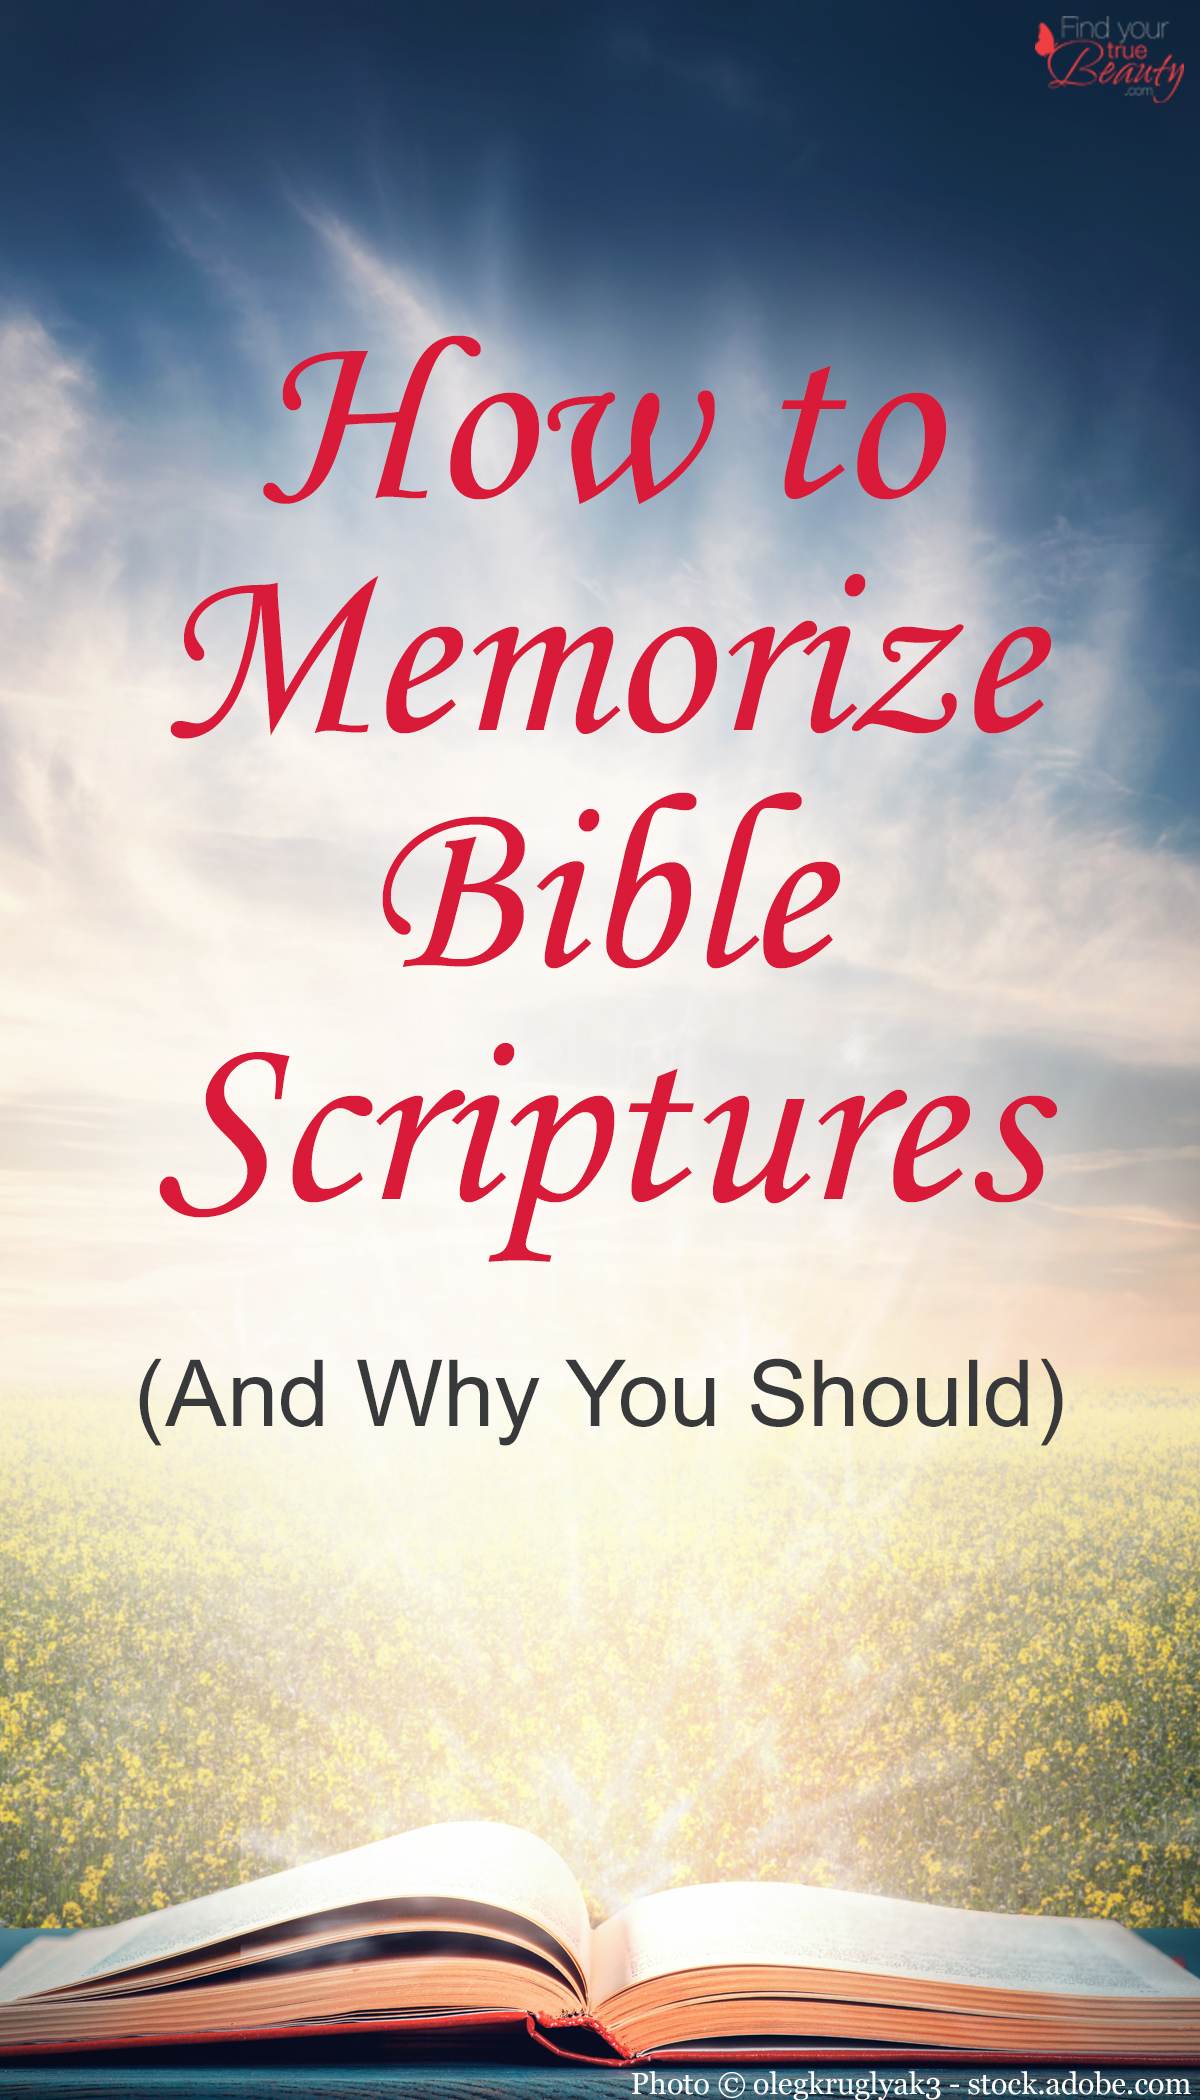 How to memorize Bible scriptures (and why you should)